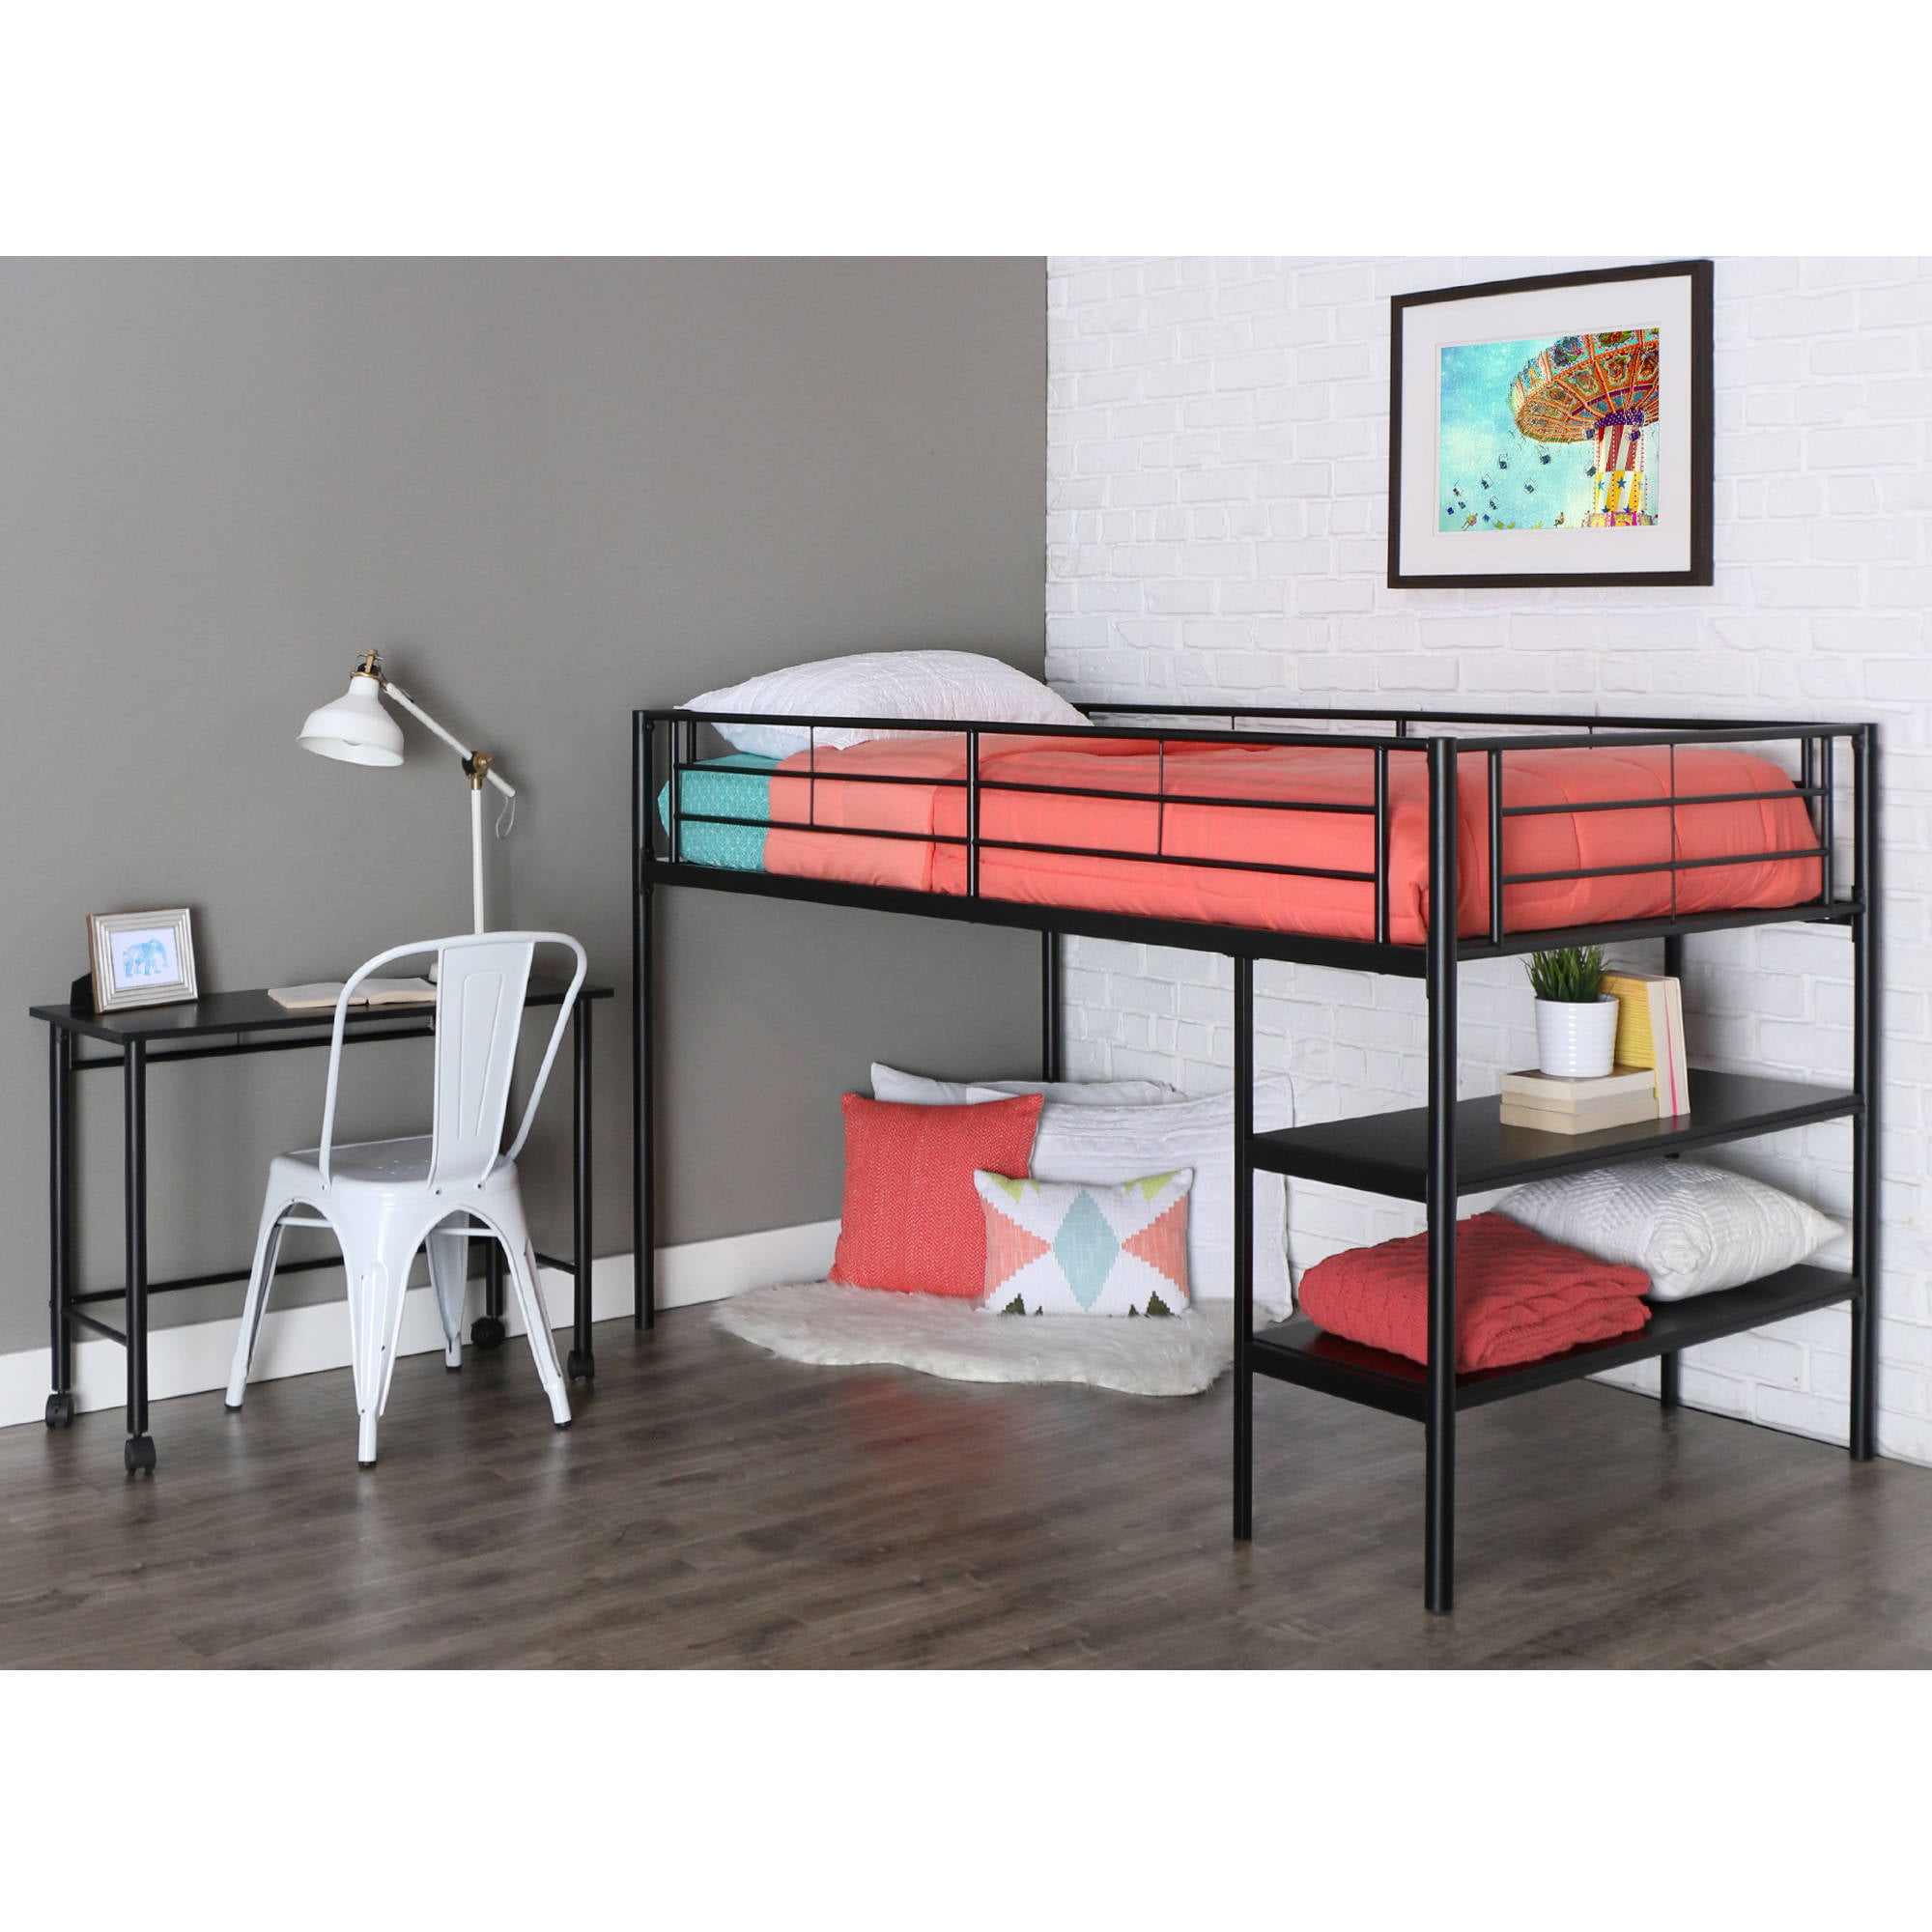 toy stylish for storage kids house solid with twin ideas best room loft bed shaped